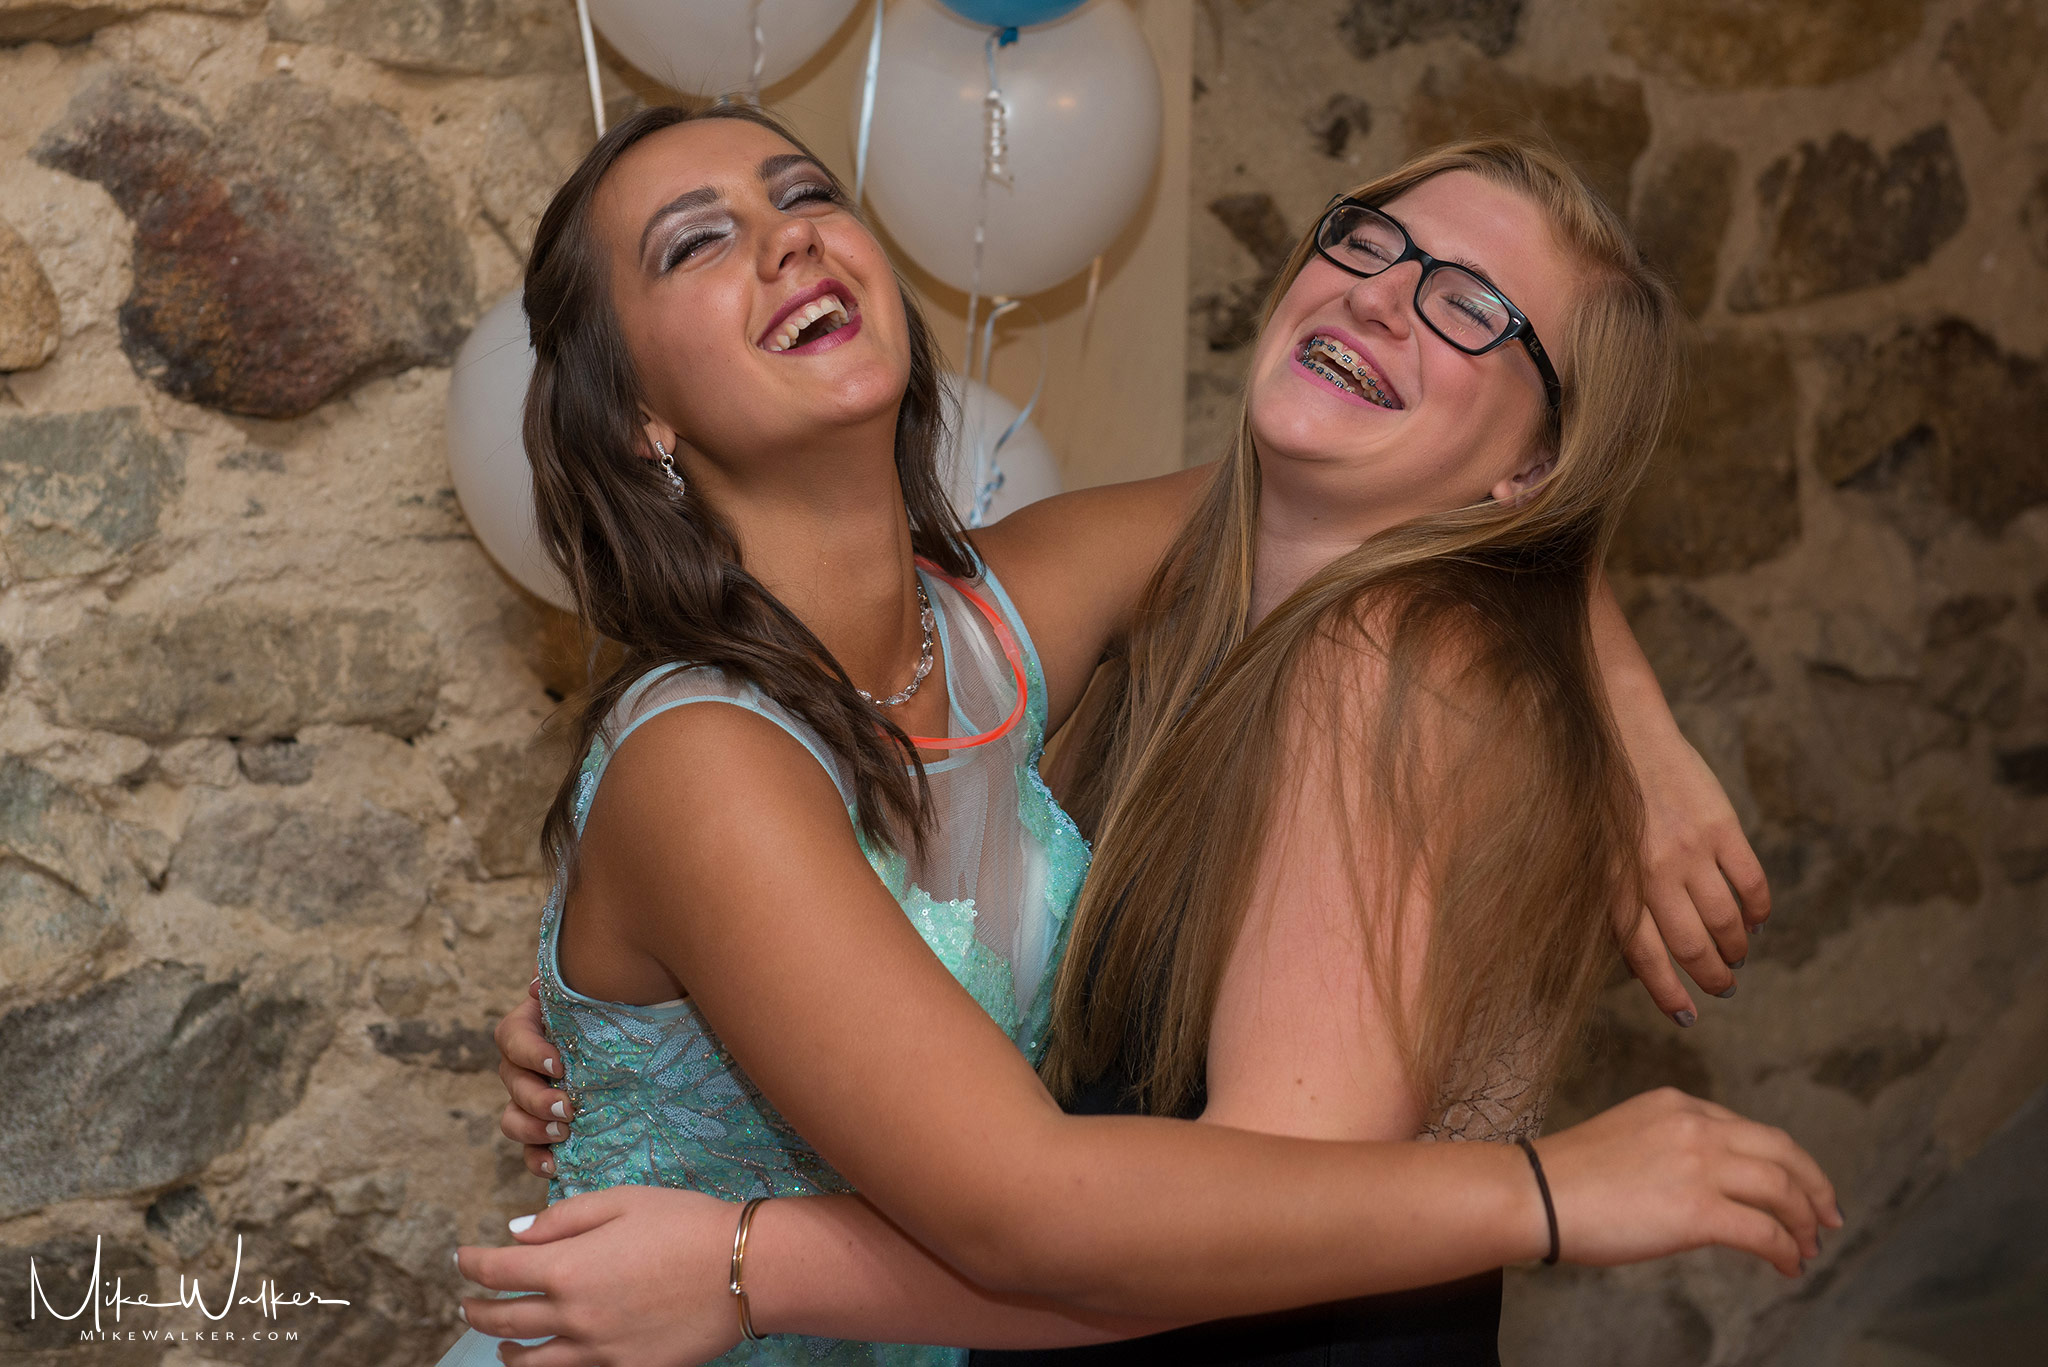 Two girls at a sweet 16 party. Event photography by Mike Walker.